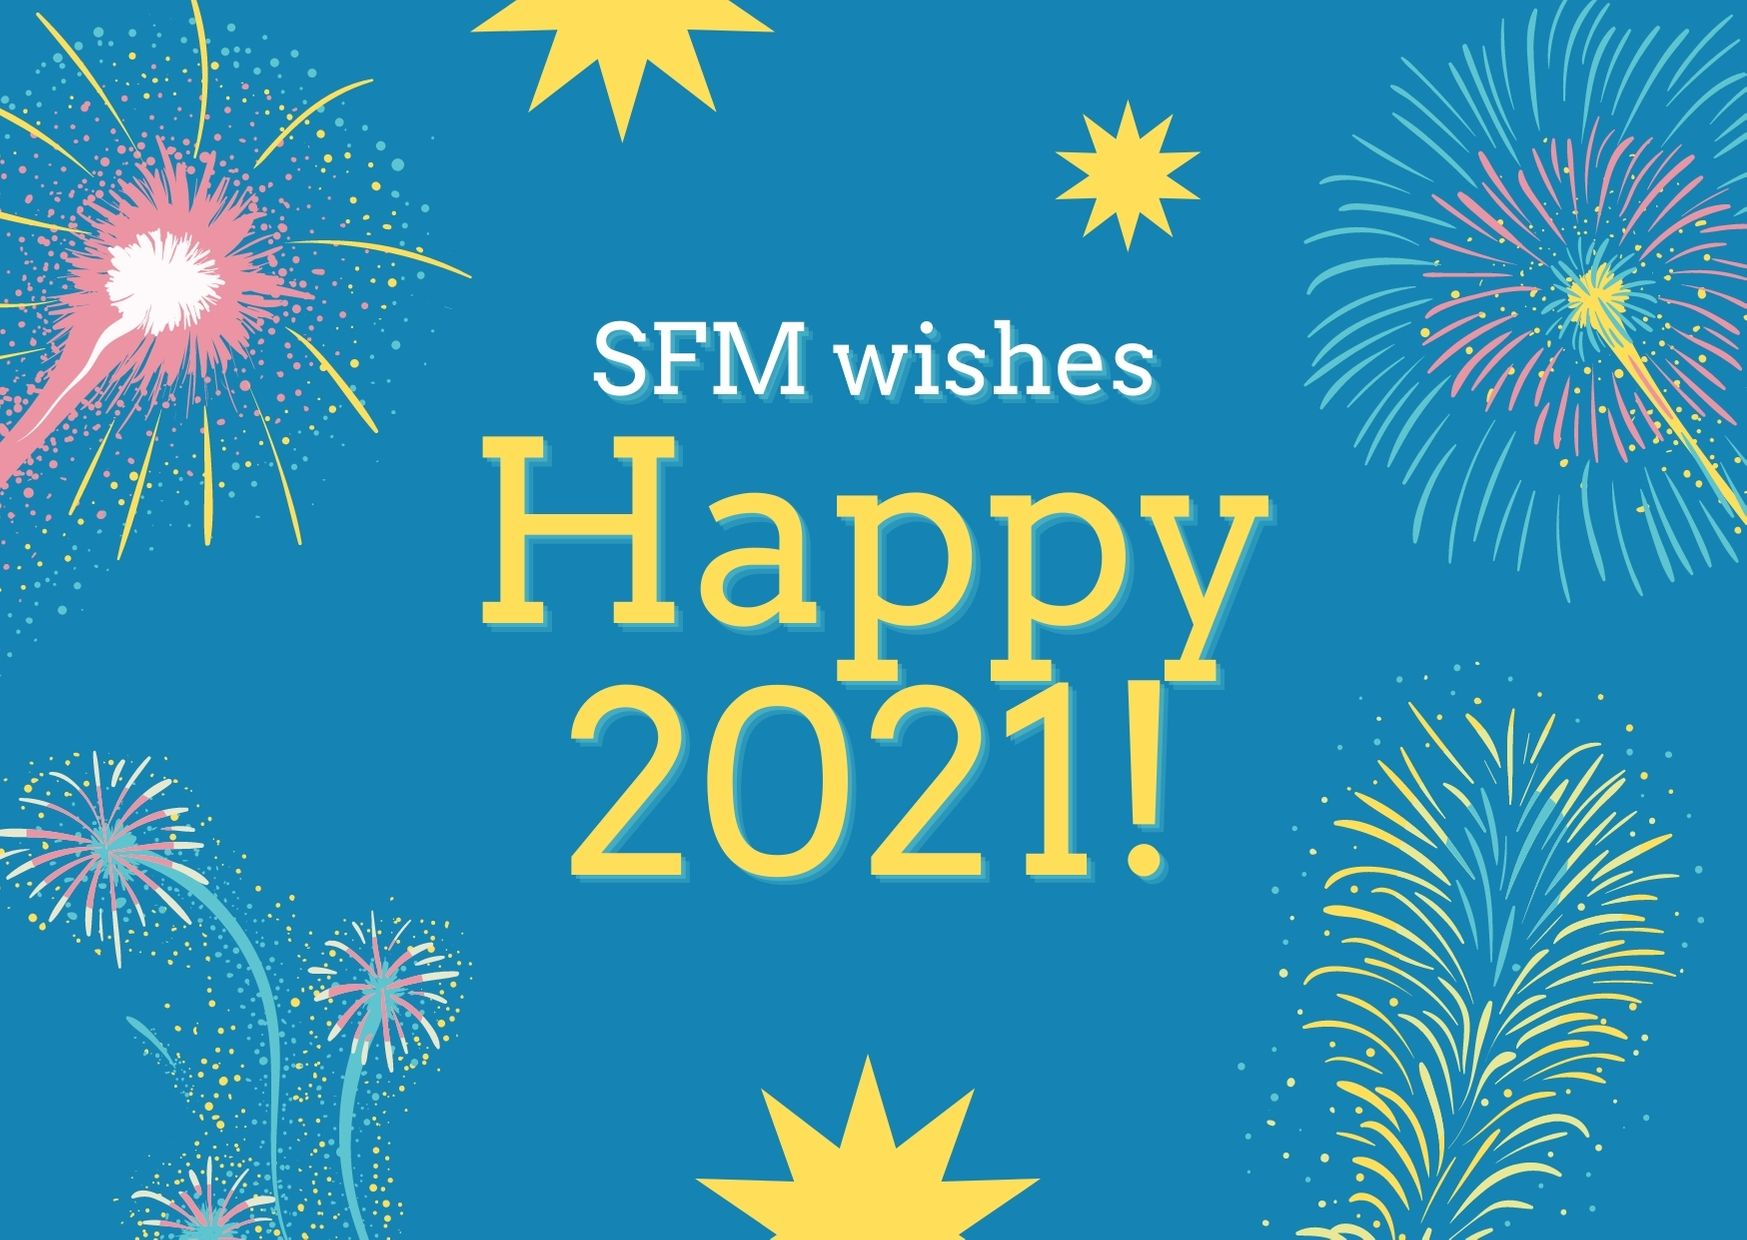 SFM wishes happy holidays and a wonderful start into 2021!